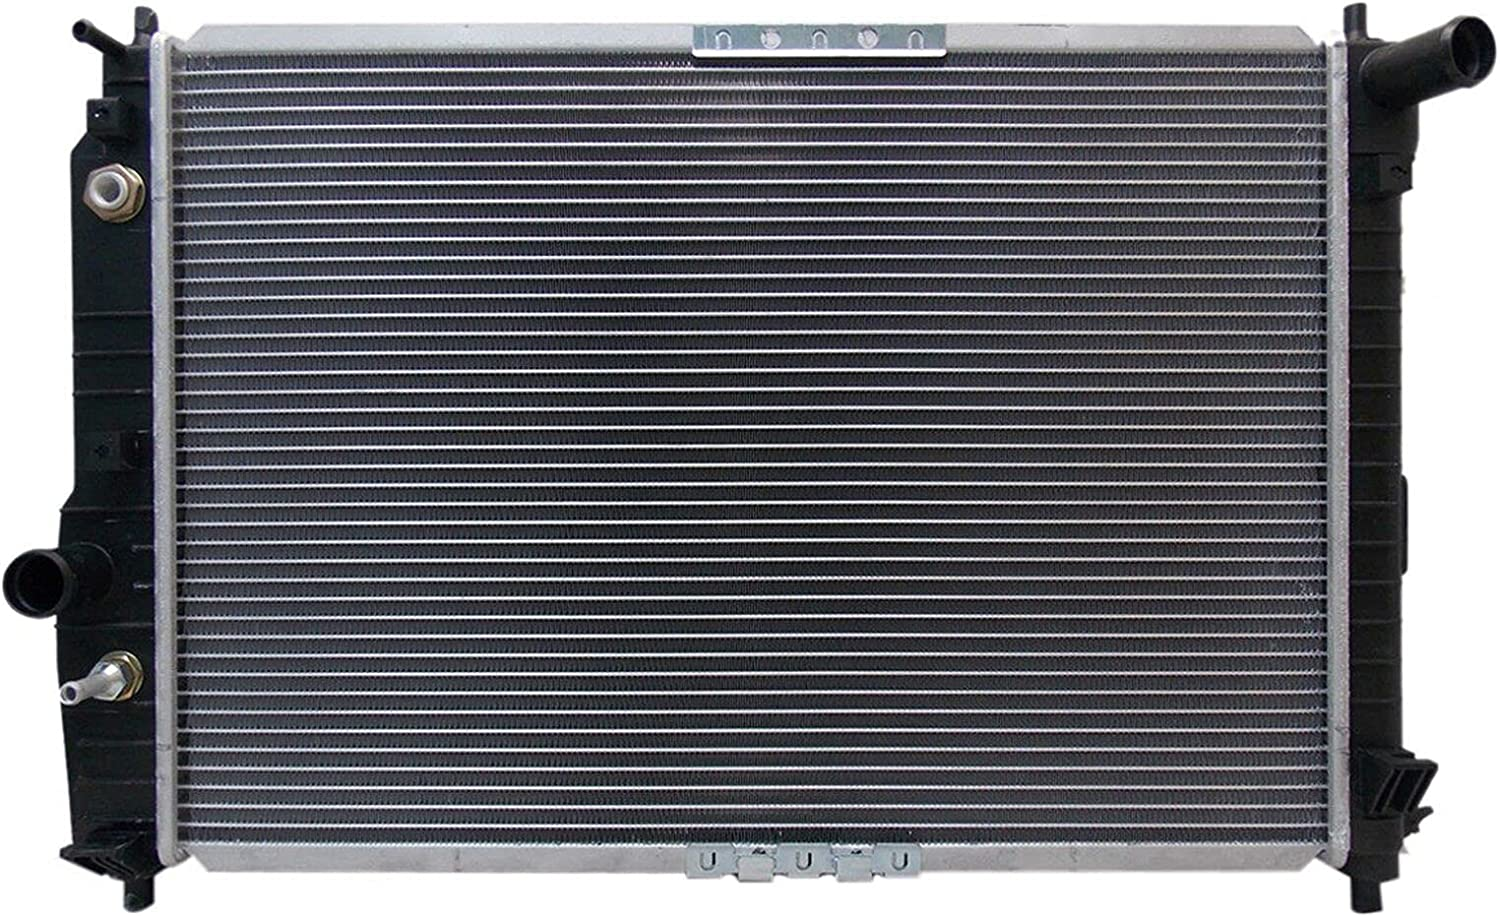 Radiator SALENEW very popular! For 2020With A C Core 5 8